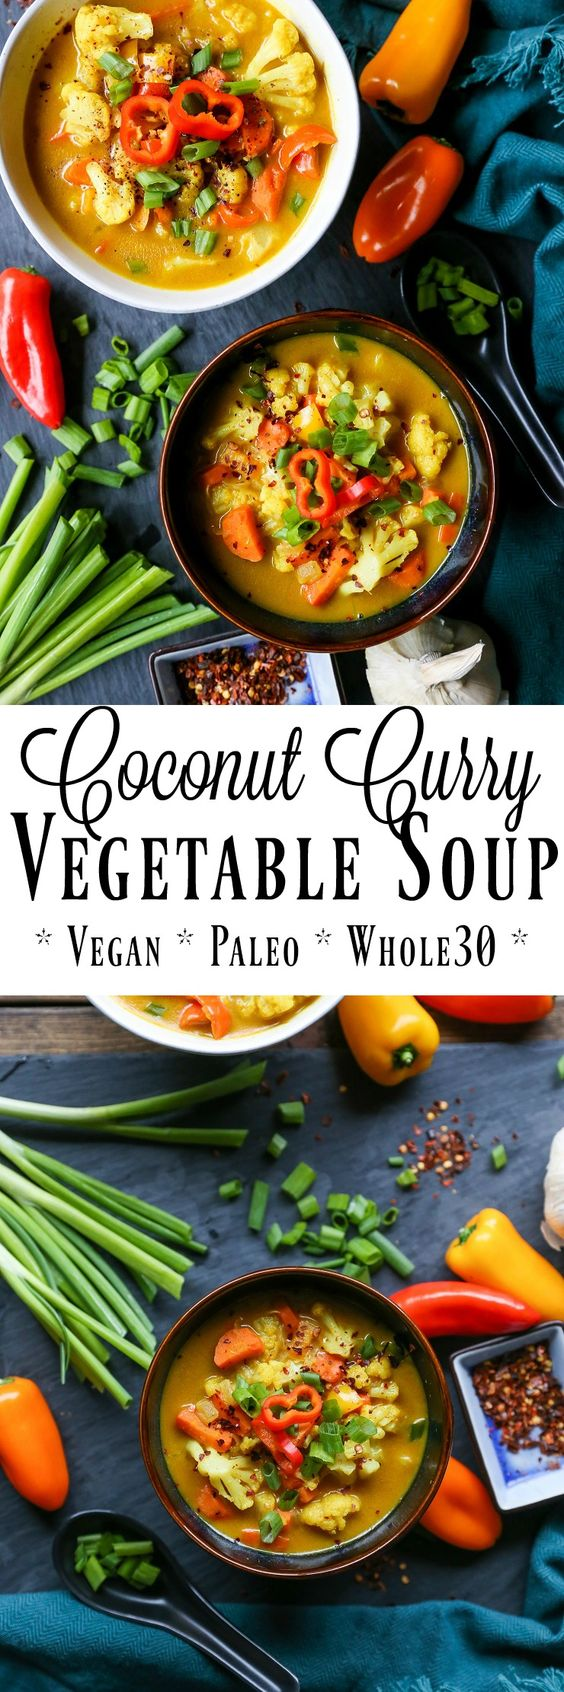 Coconut Curry Vegetable Soup - vegan, paleo, Whole30! This delicious soup comes together in only 30 minutes